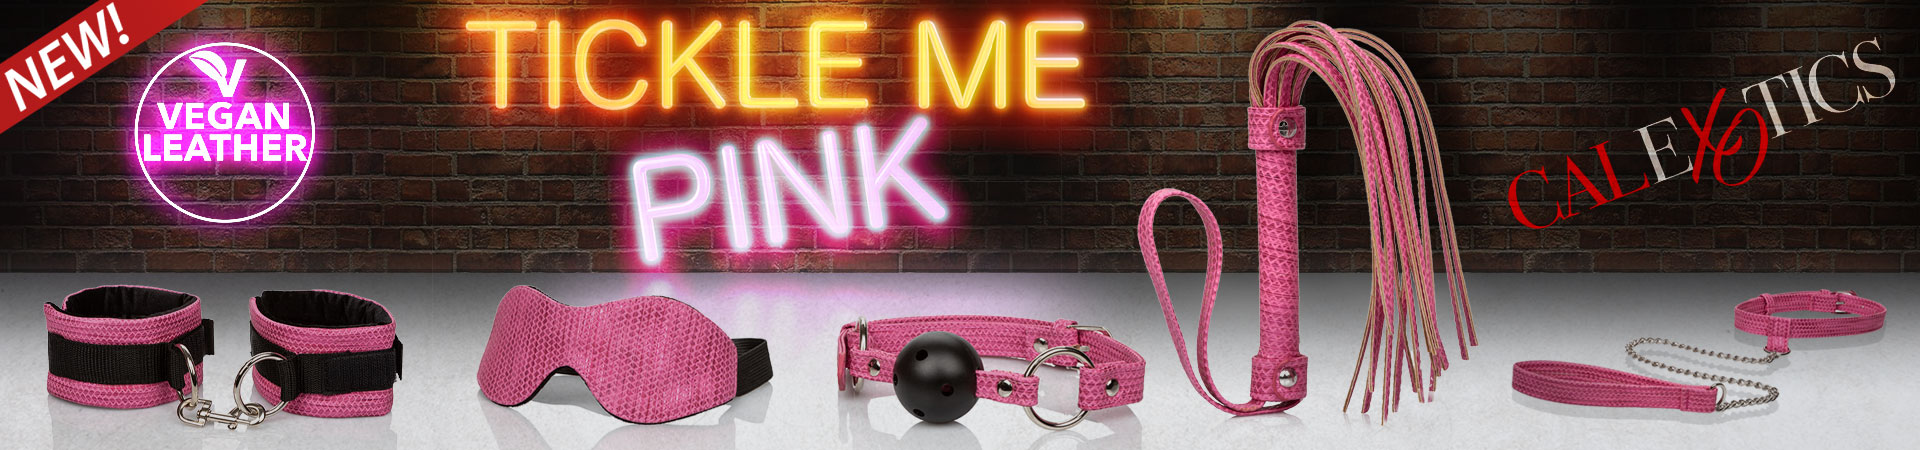 New at SheVibe! The Tickle Me Pink Light Bondage Line is Here!